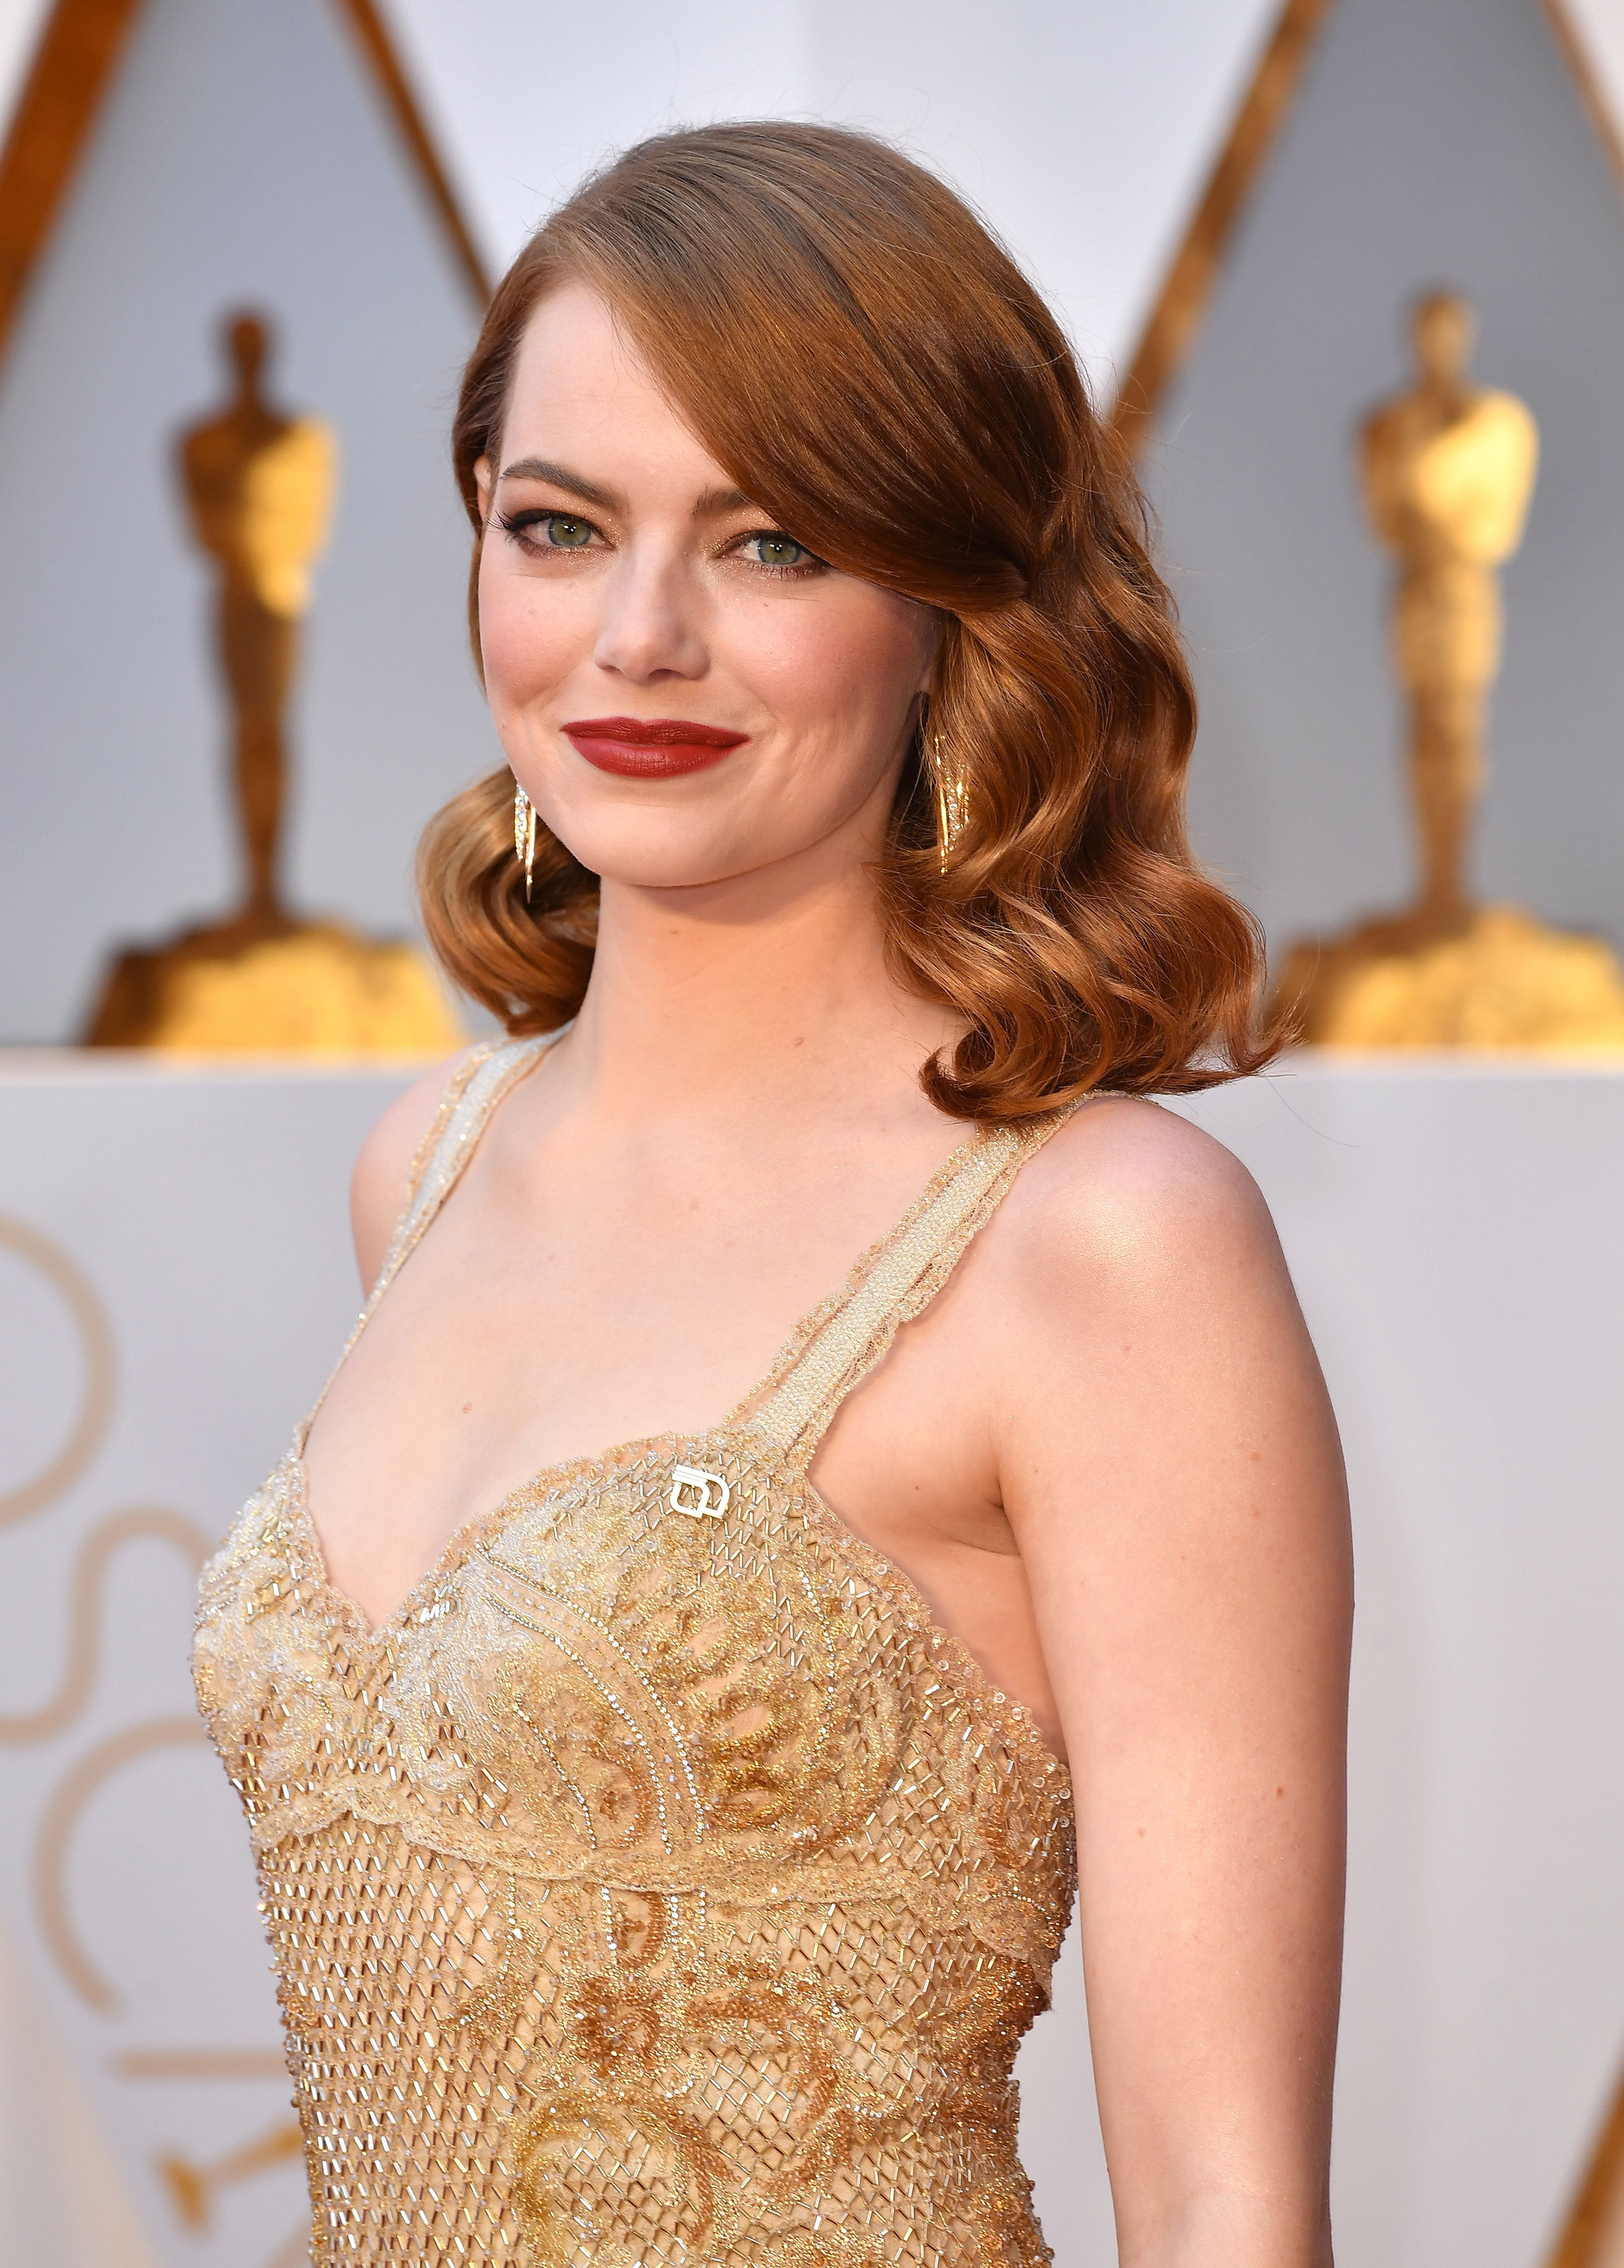 Emma Stone And Dakota Johnson Challenged The Oscars Statuette To A Style